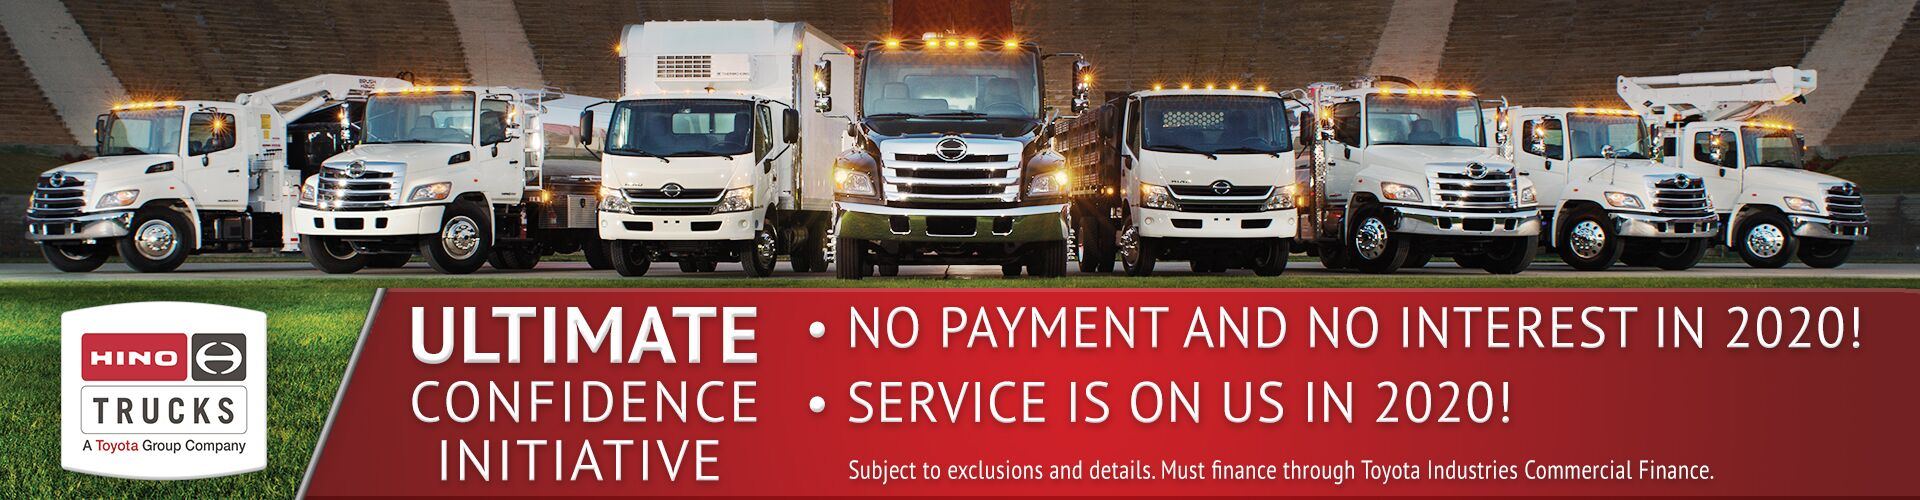 Hino Ultimate Confidence Initiative Offer